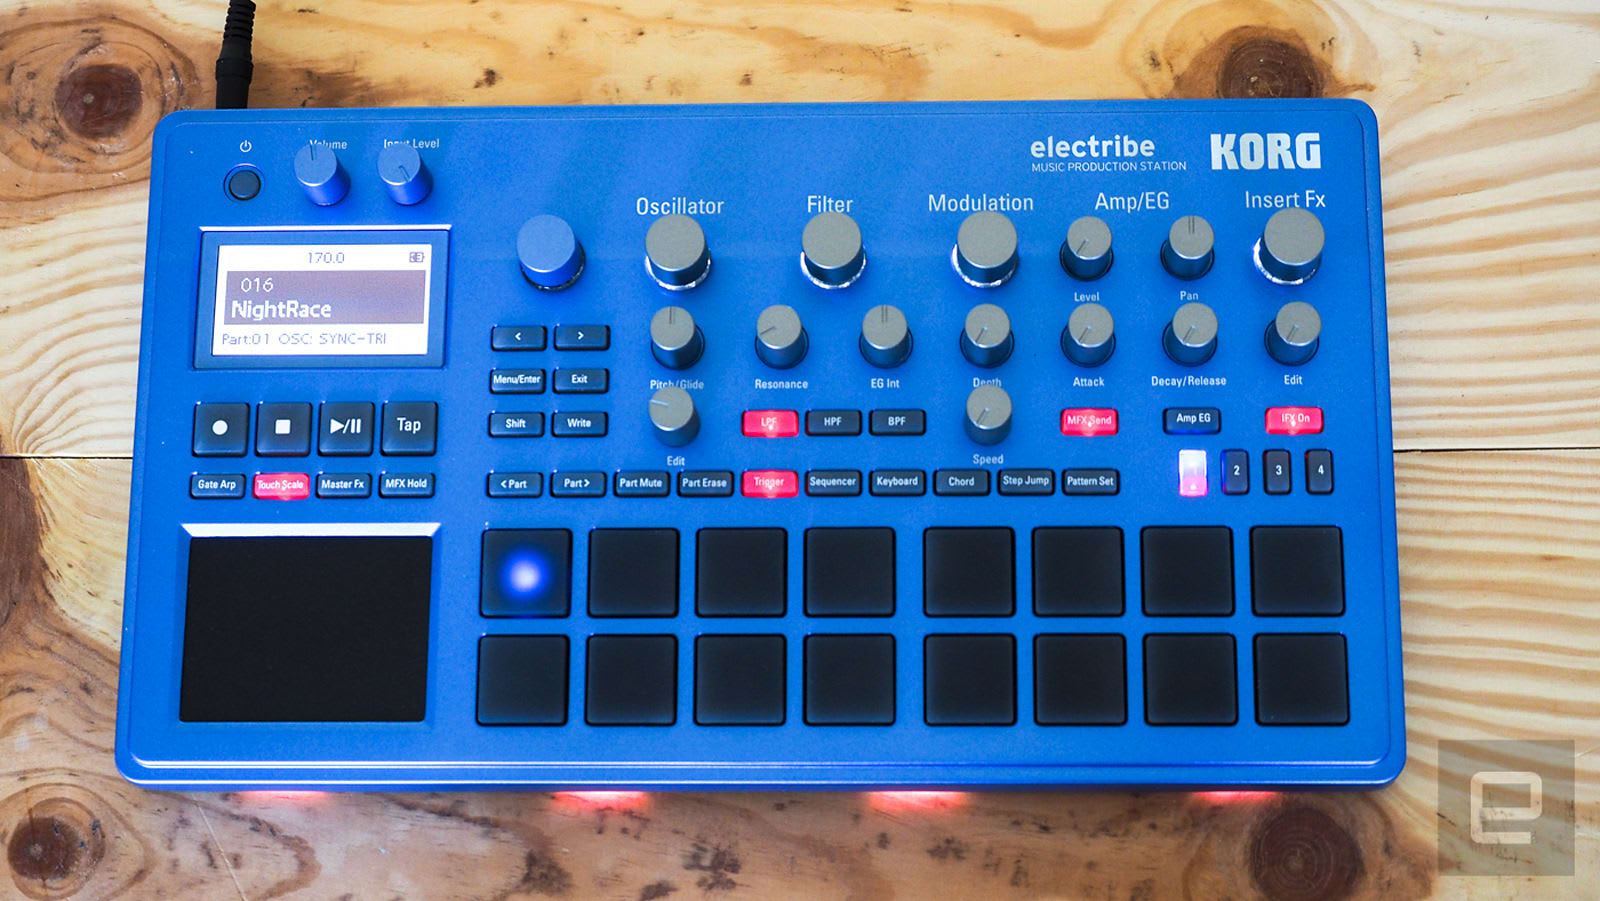 Korg's fun-to-use Electribe sequencers pack big features into a tiny